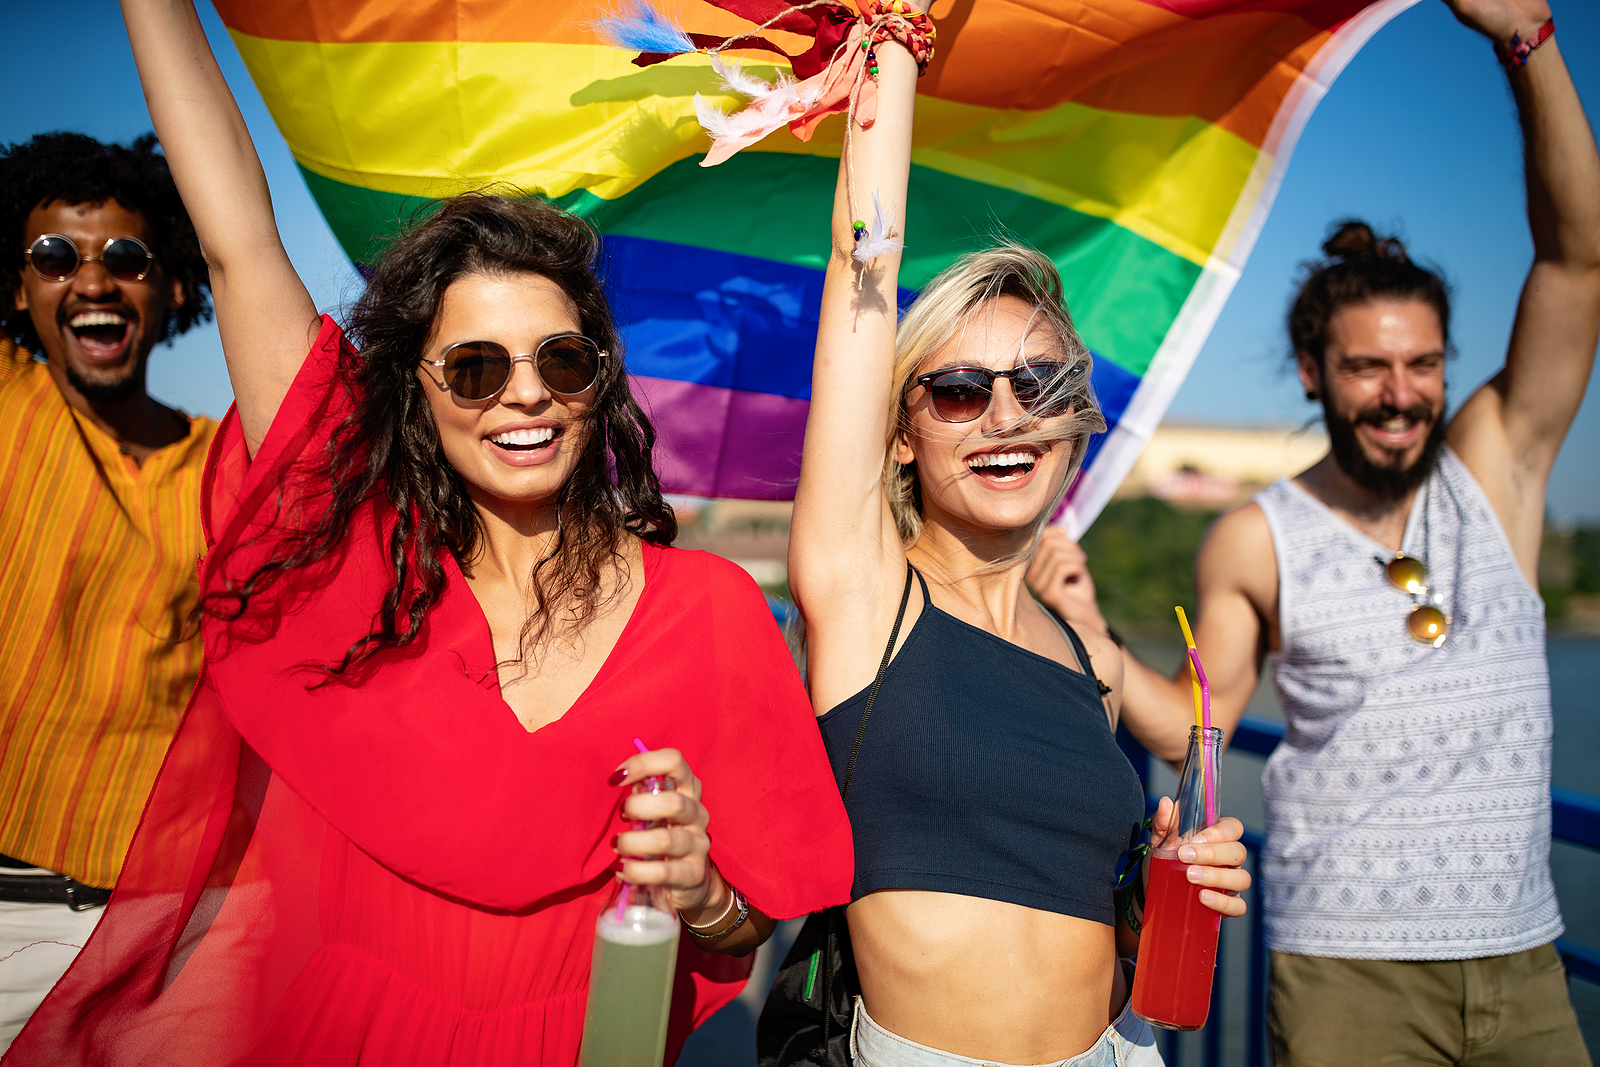 Image of an ethnically diverse group smiling walking together and holding a rainbow flag.